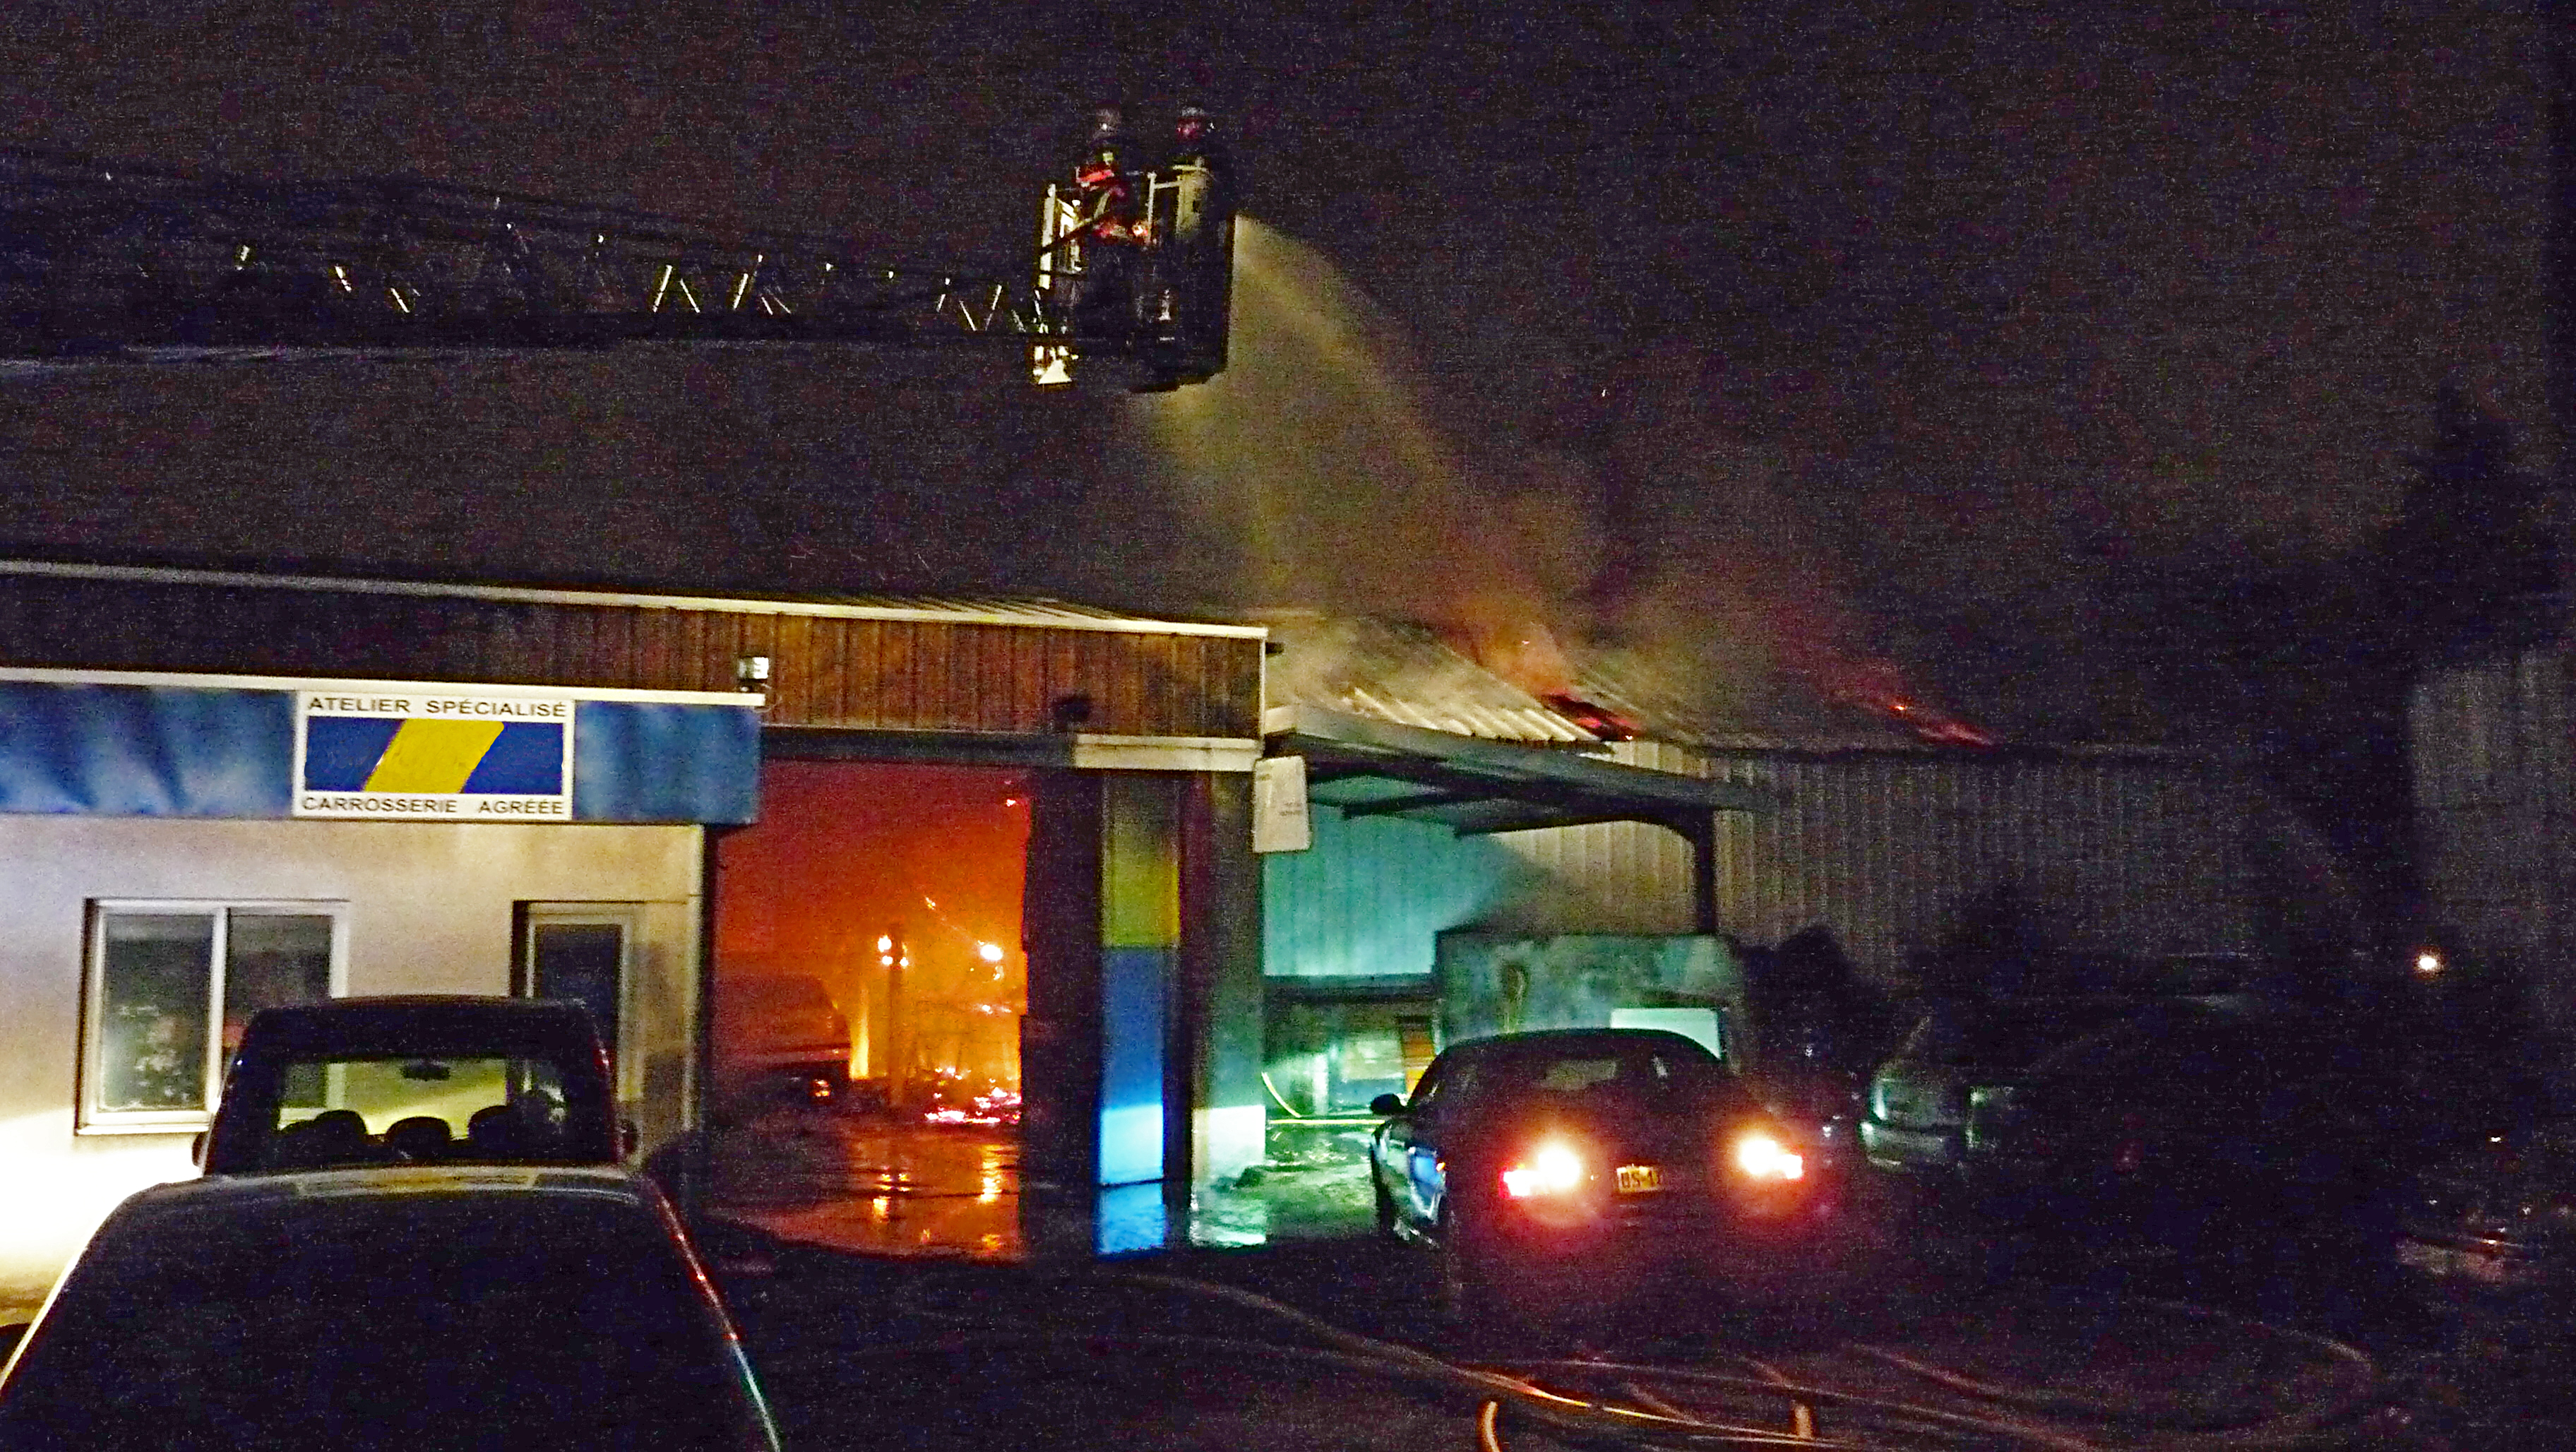 Feu de garage automobile sur la commune de Mazamet